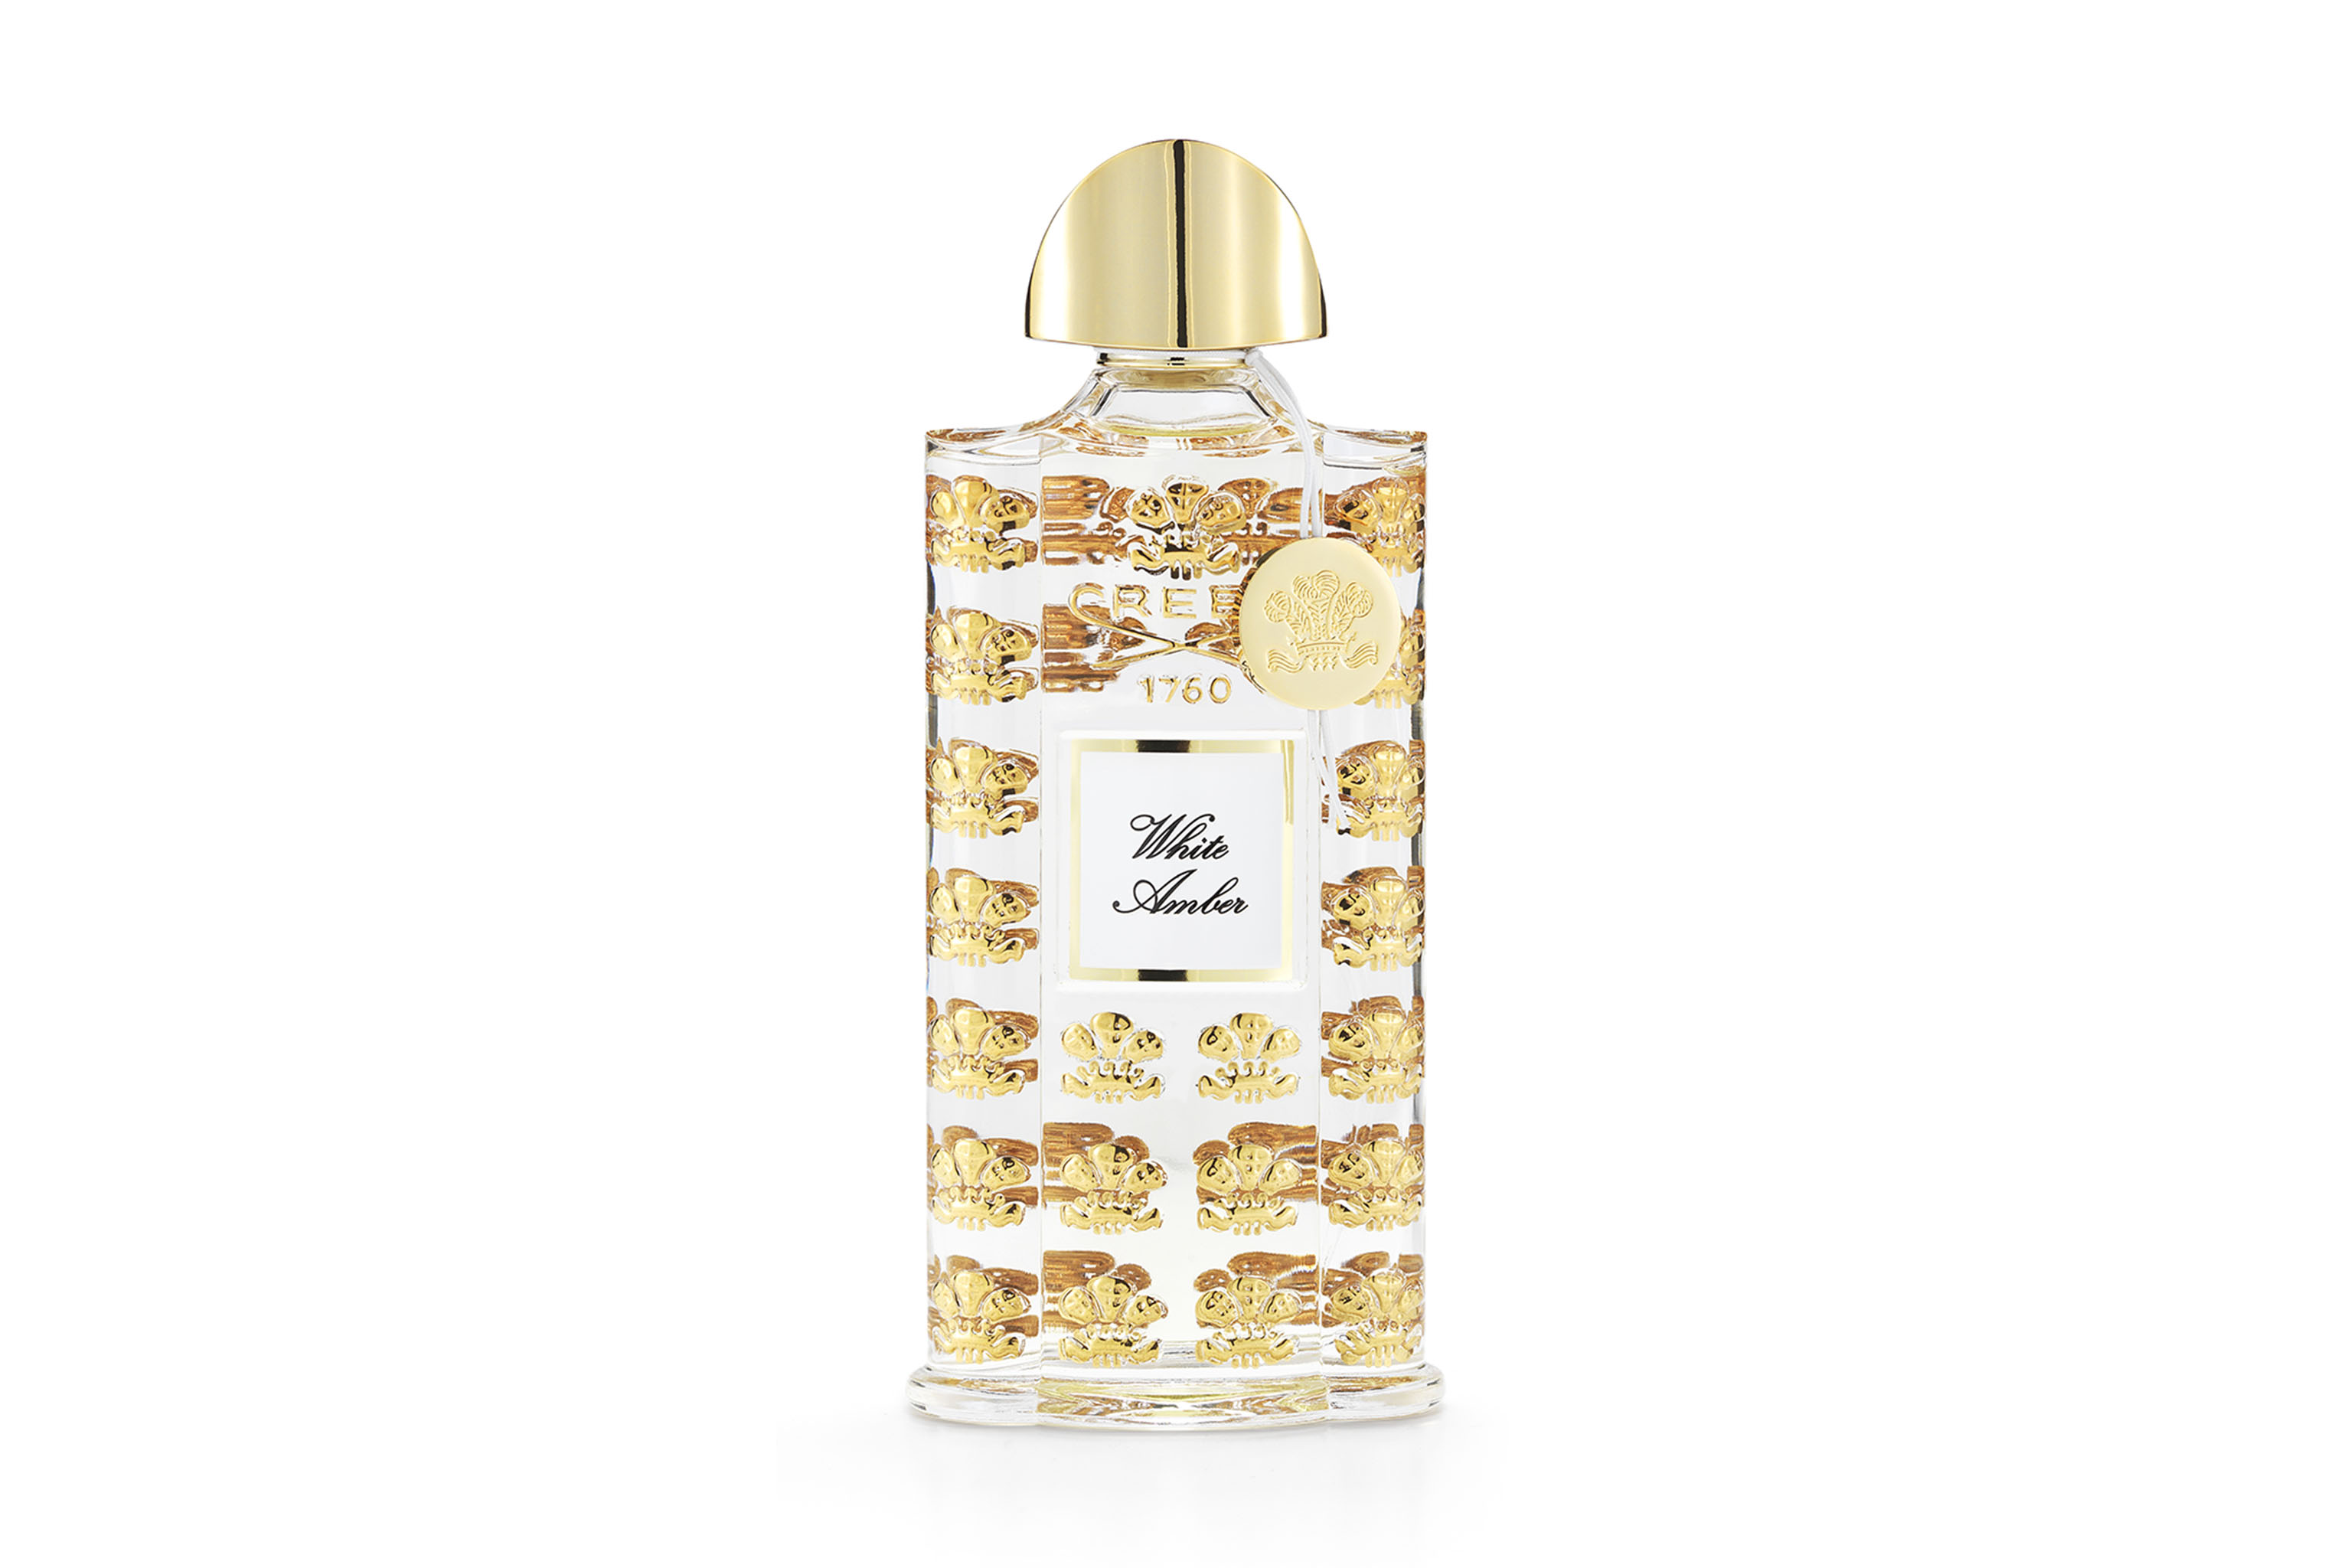 Creed's new women's fragrance White Amber.